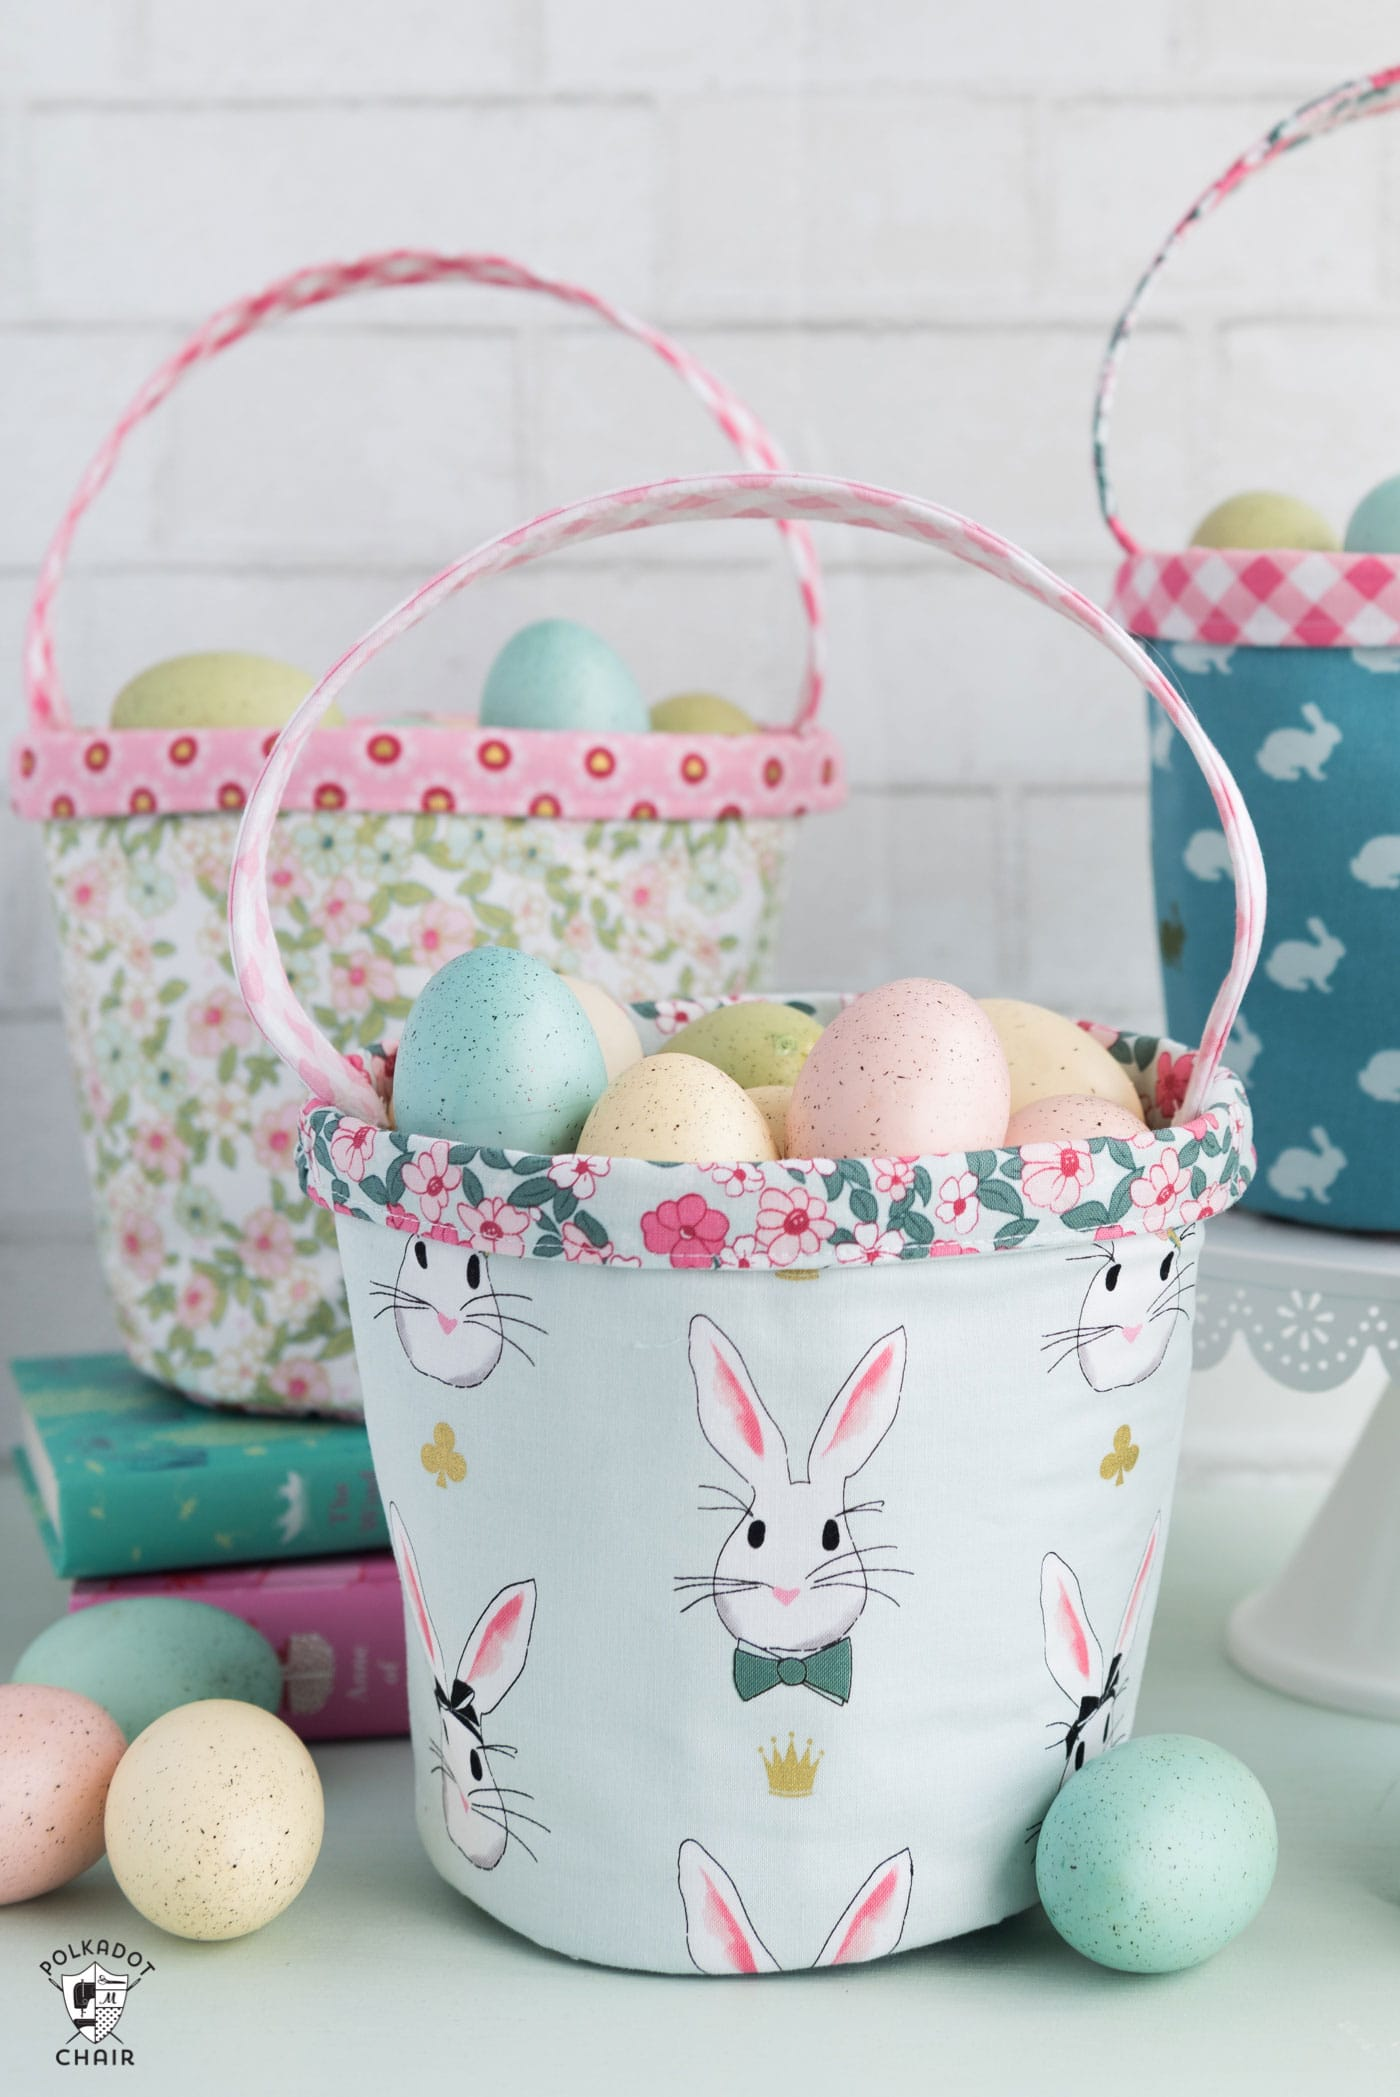 Easter Basket Sewing Pattern  The Polka Dot Chair